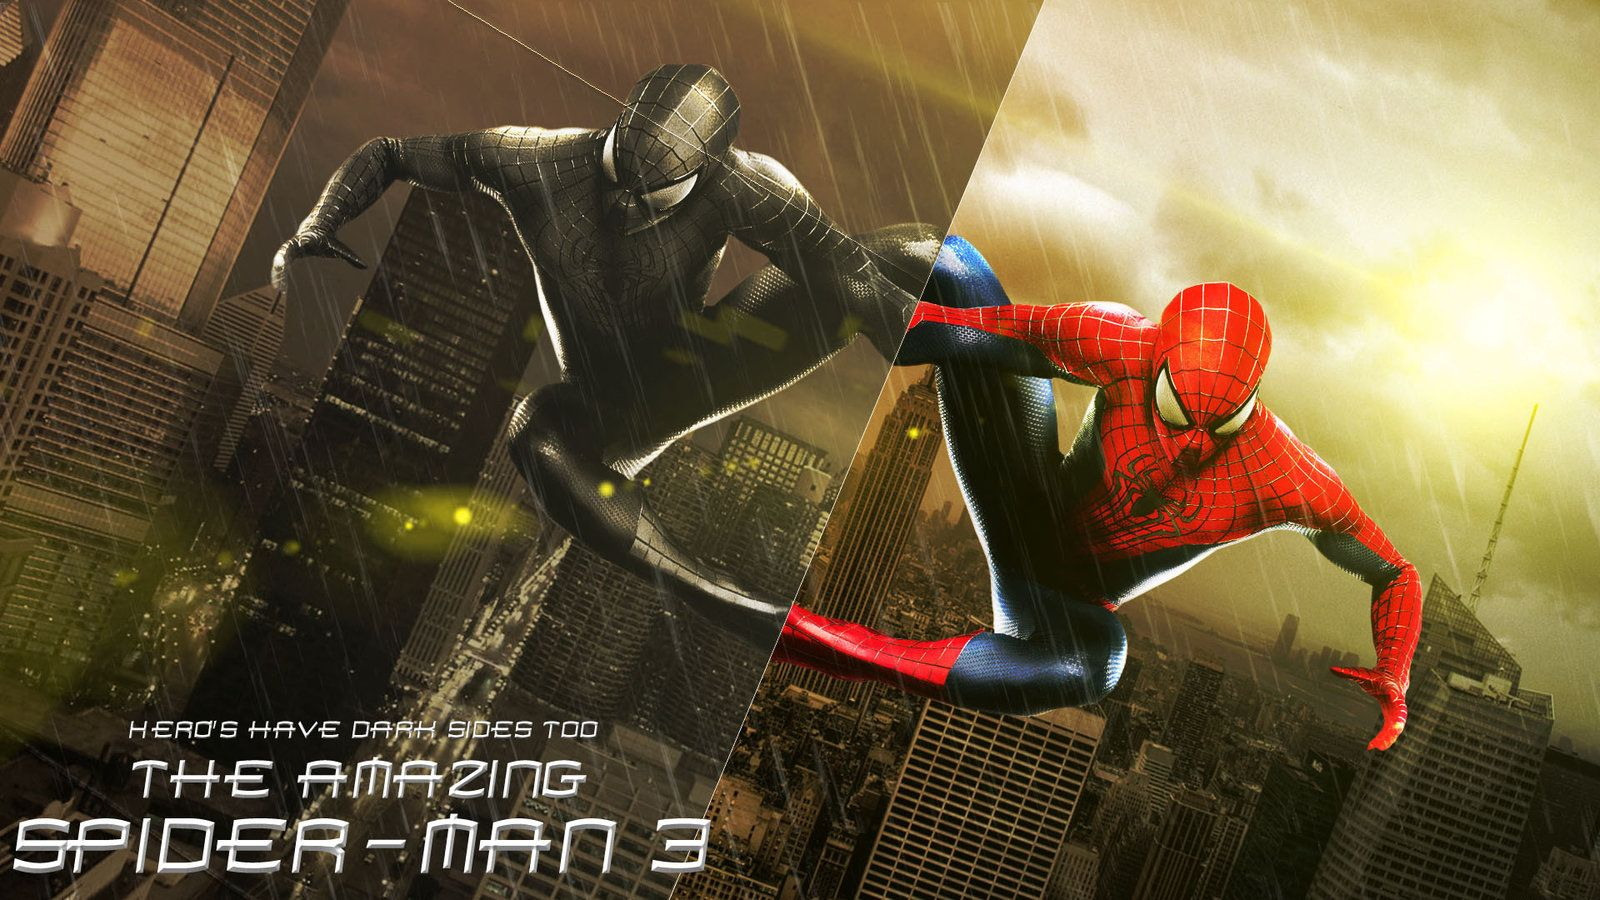 Amazing Spiderman Best iPhone Wallpapers HD is be the best of